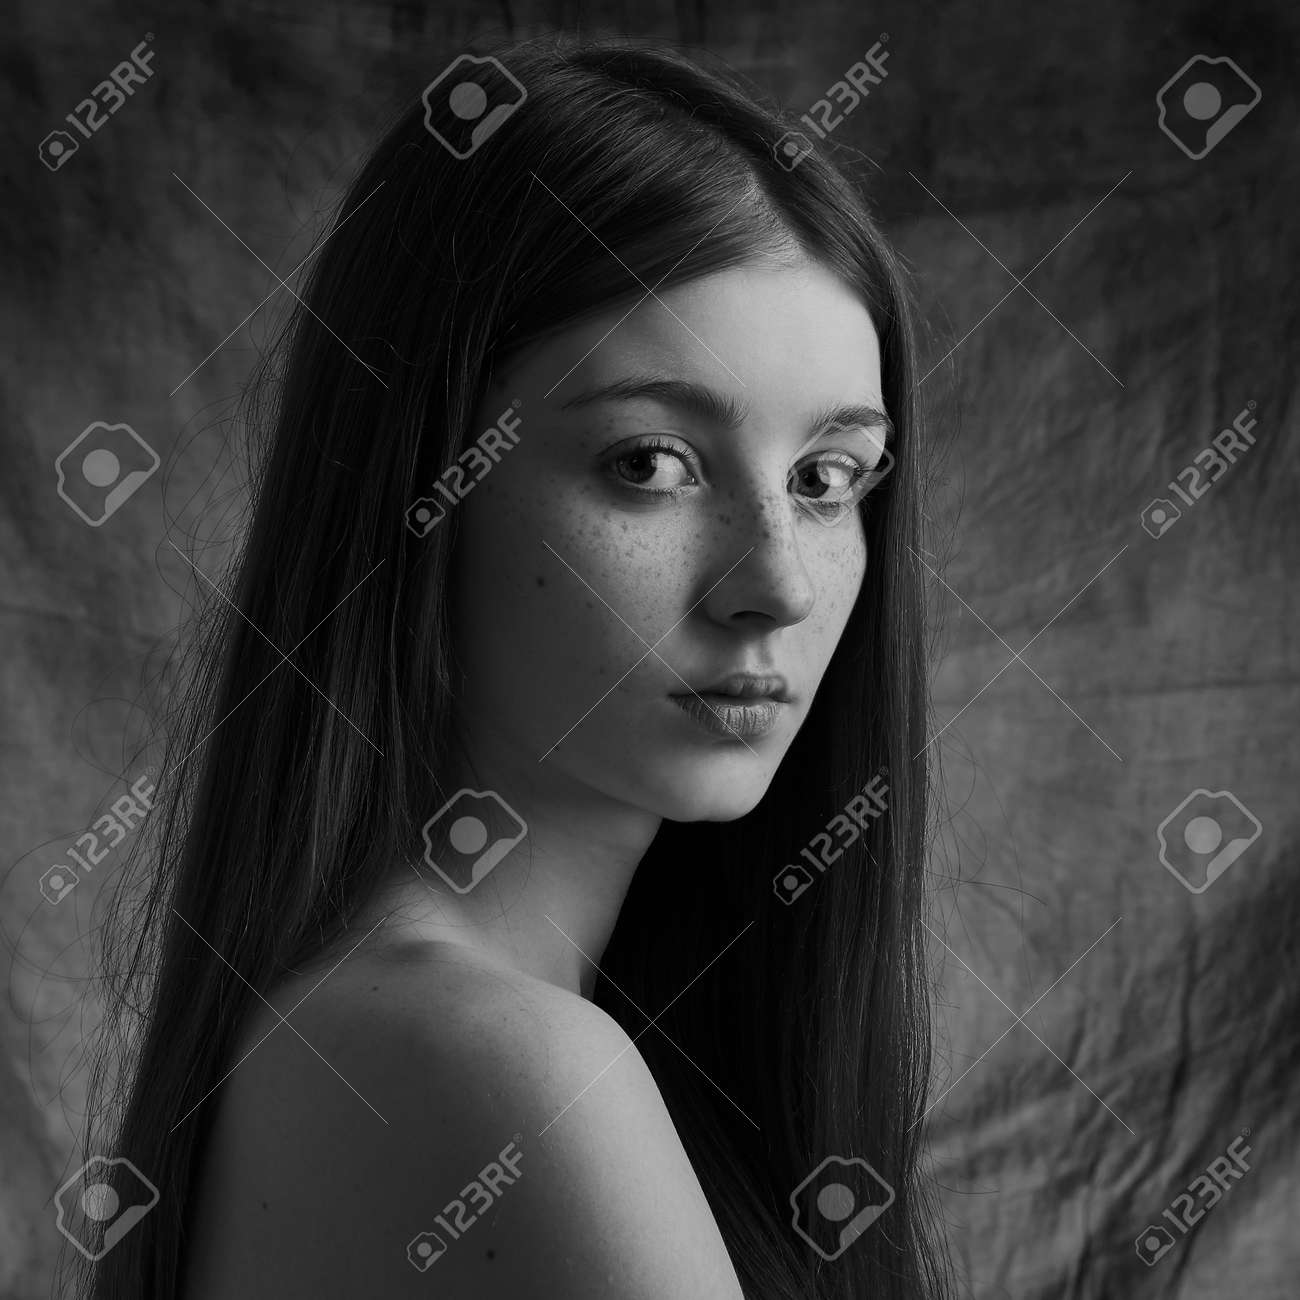 Dramatic black and white portrait of a beautiful lonely girl